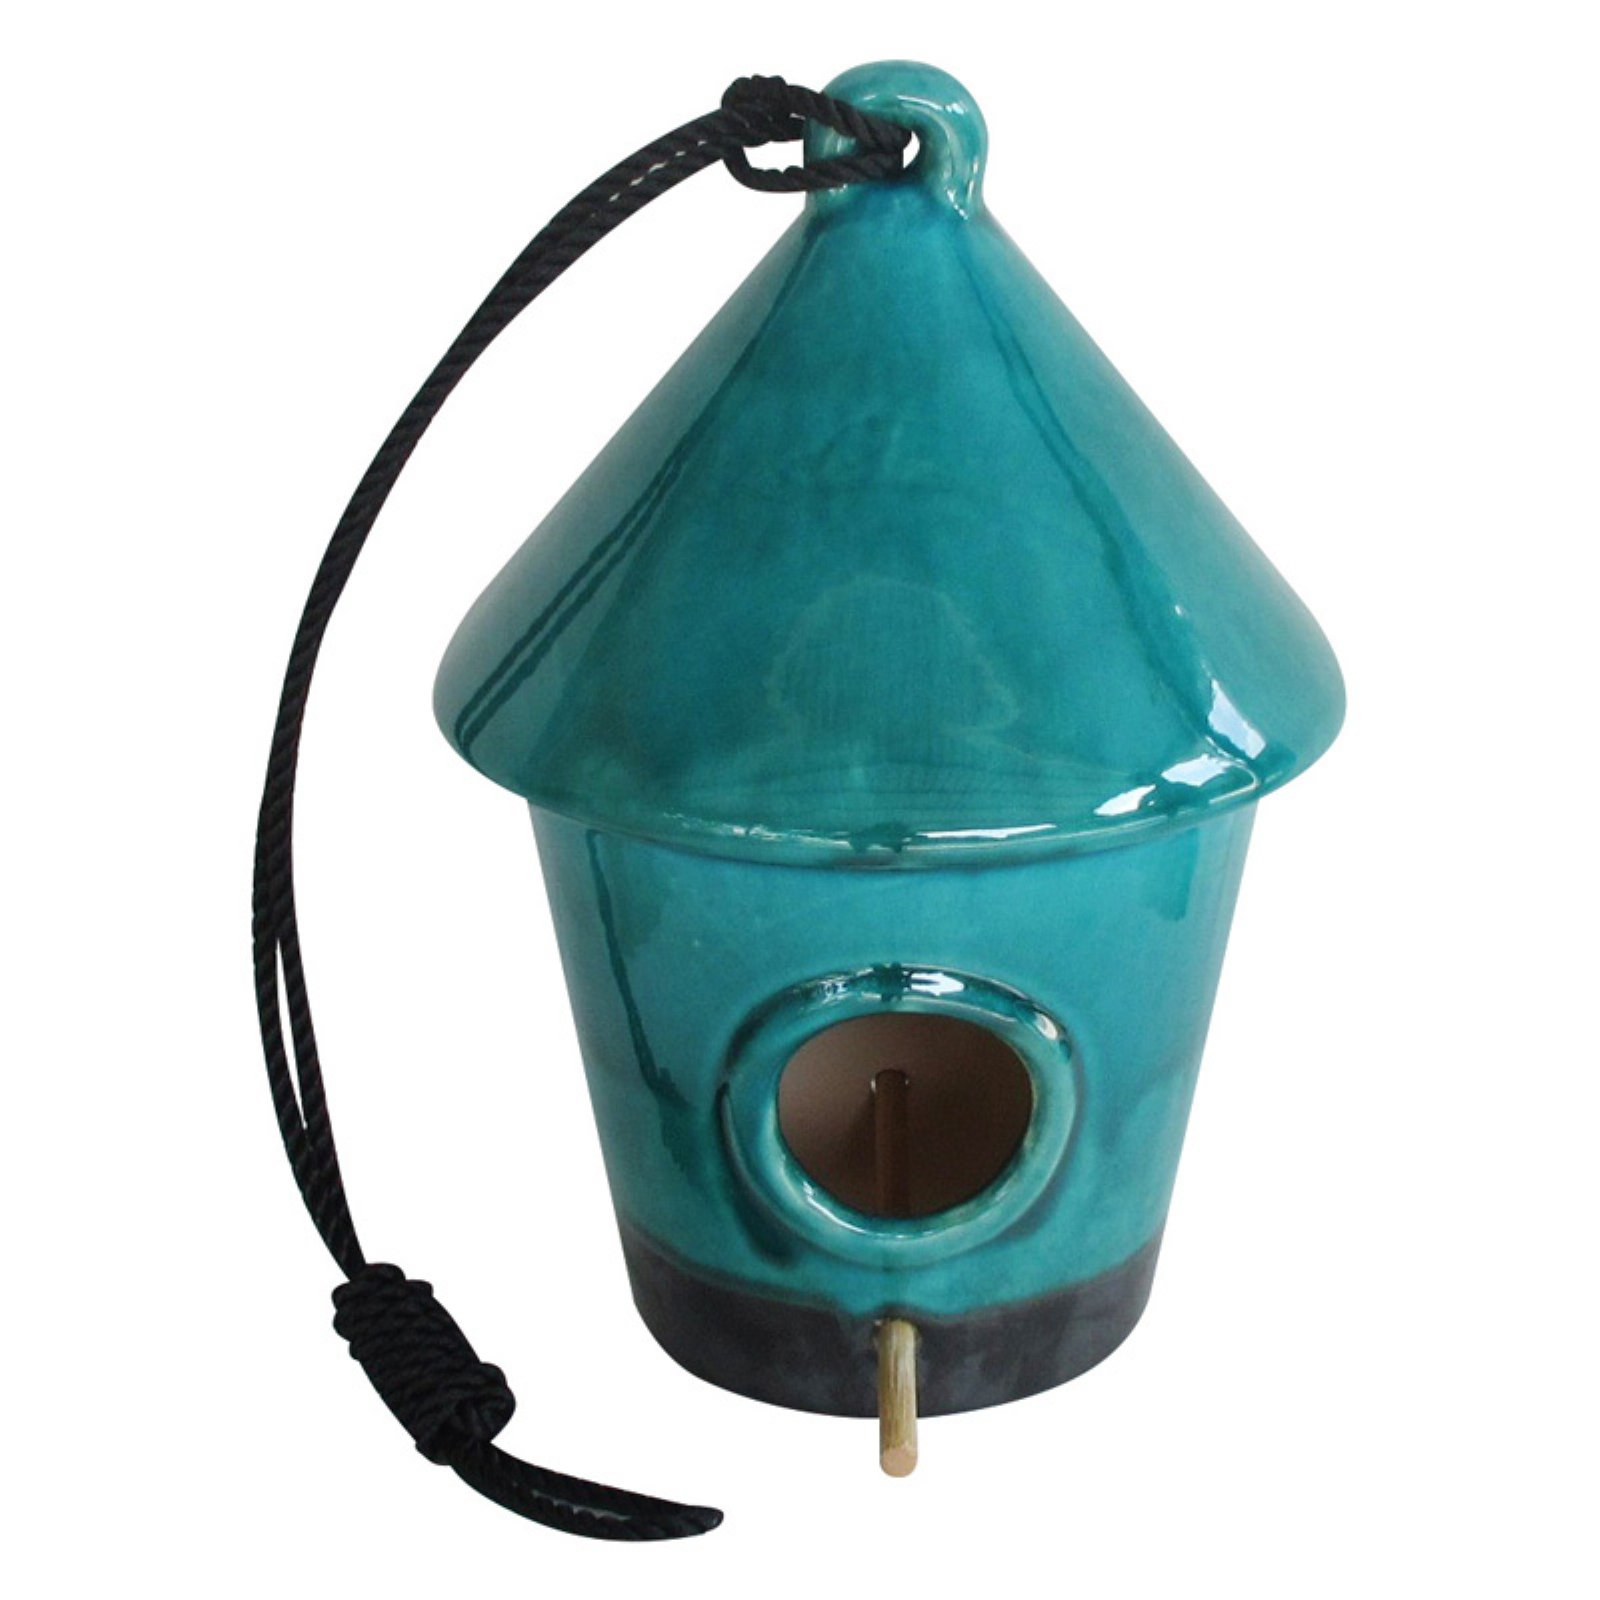 "10"" Hanging Birdhouse, Turquoise by Bird Houses"